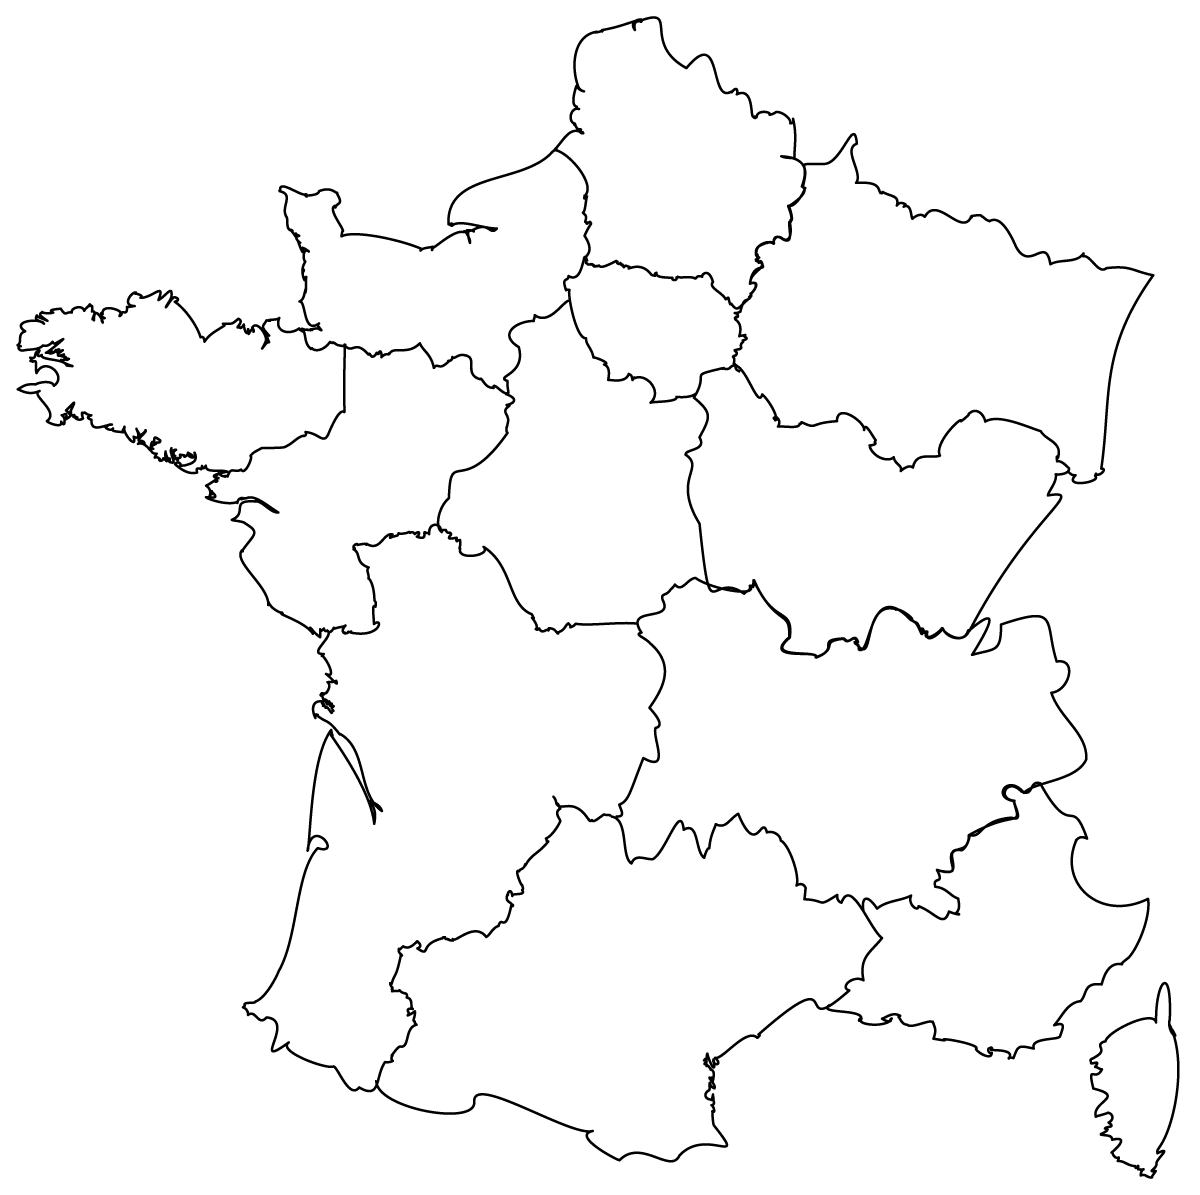 Maps of the regions of France Blank Map Of France And Bordering Countries on map of countries that border france, map of france and turkey, map with countries border iran, map of france and neighboring countries, map of france regions departements, map of france and mountains, map of monaco and surrounding countries, map pyrenees france, map french regions in france, france and surrounding countries, map of brussels and surrounding countries, map of france and seas, map of france burgundy wine region, map of france and neighbouring countries, us map with surrounding countries, map of ancient greece and greek islands, map of france after french revolution, map of france wine growing regions, map with italy flag, map of france and outlying countries,